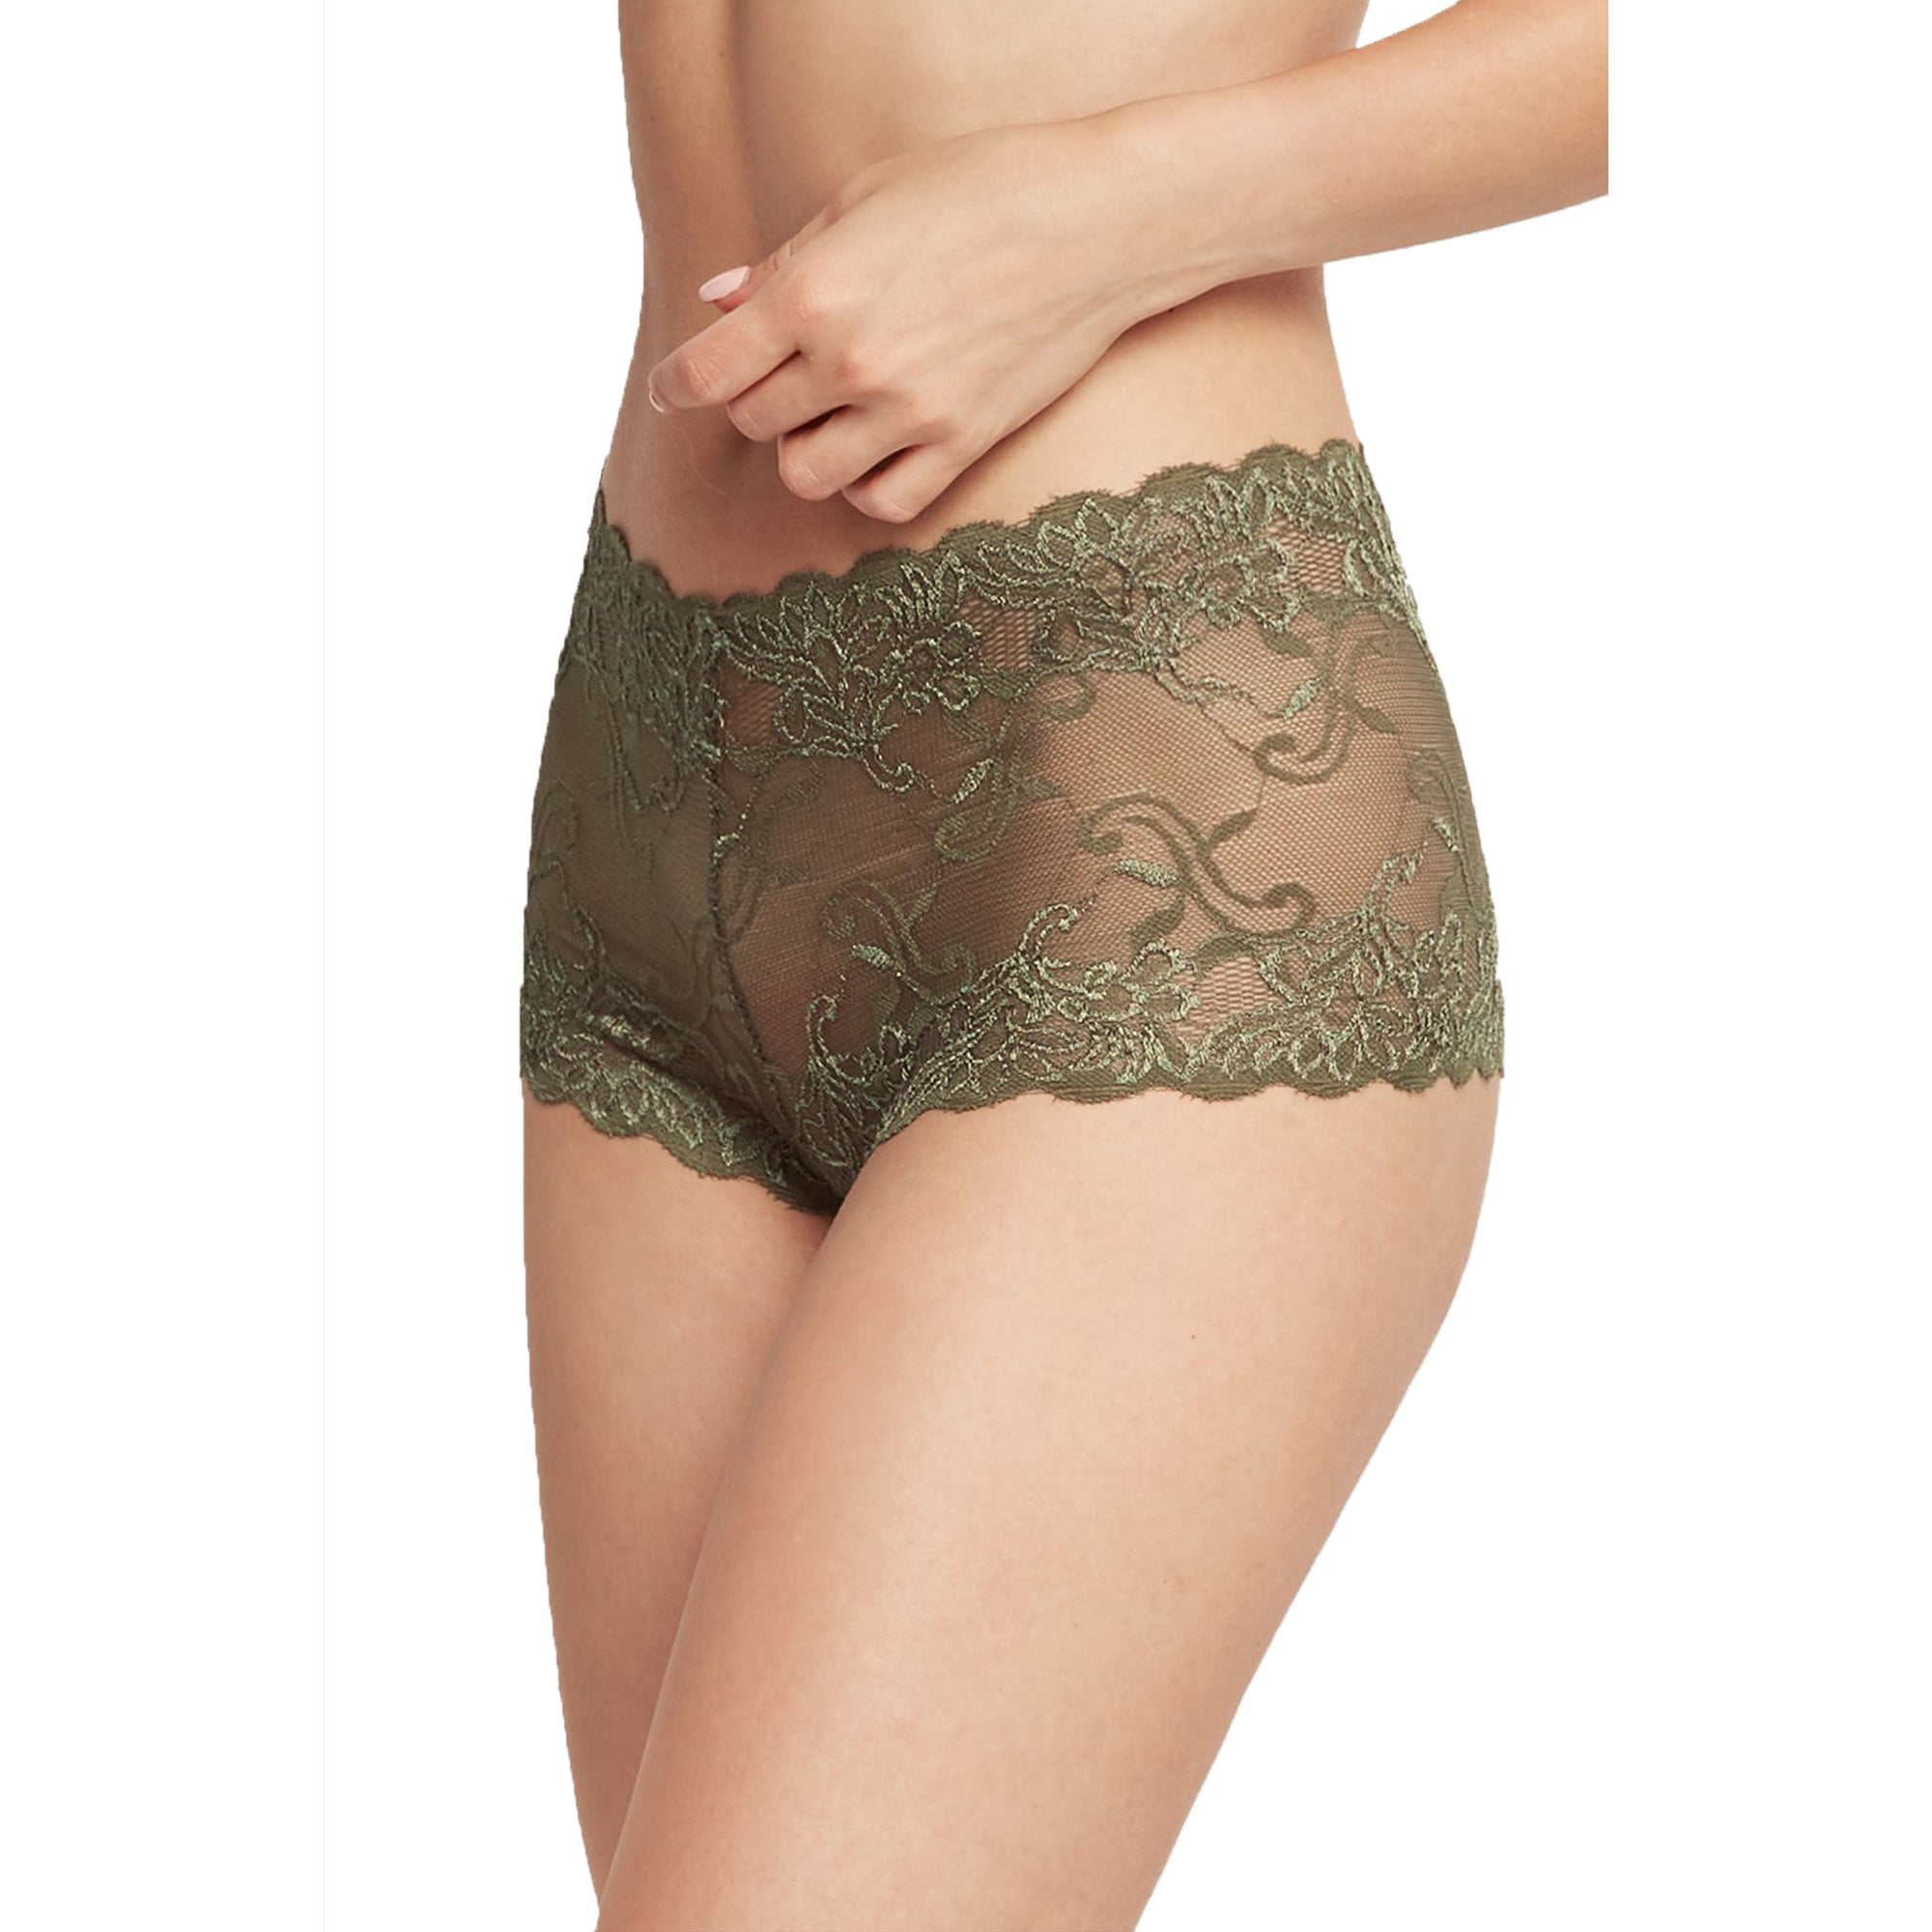 6 Pack of Women's Lace Boyshort Panties